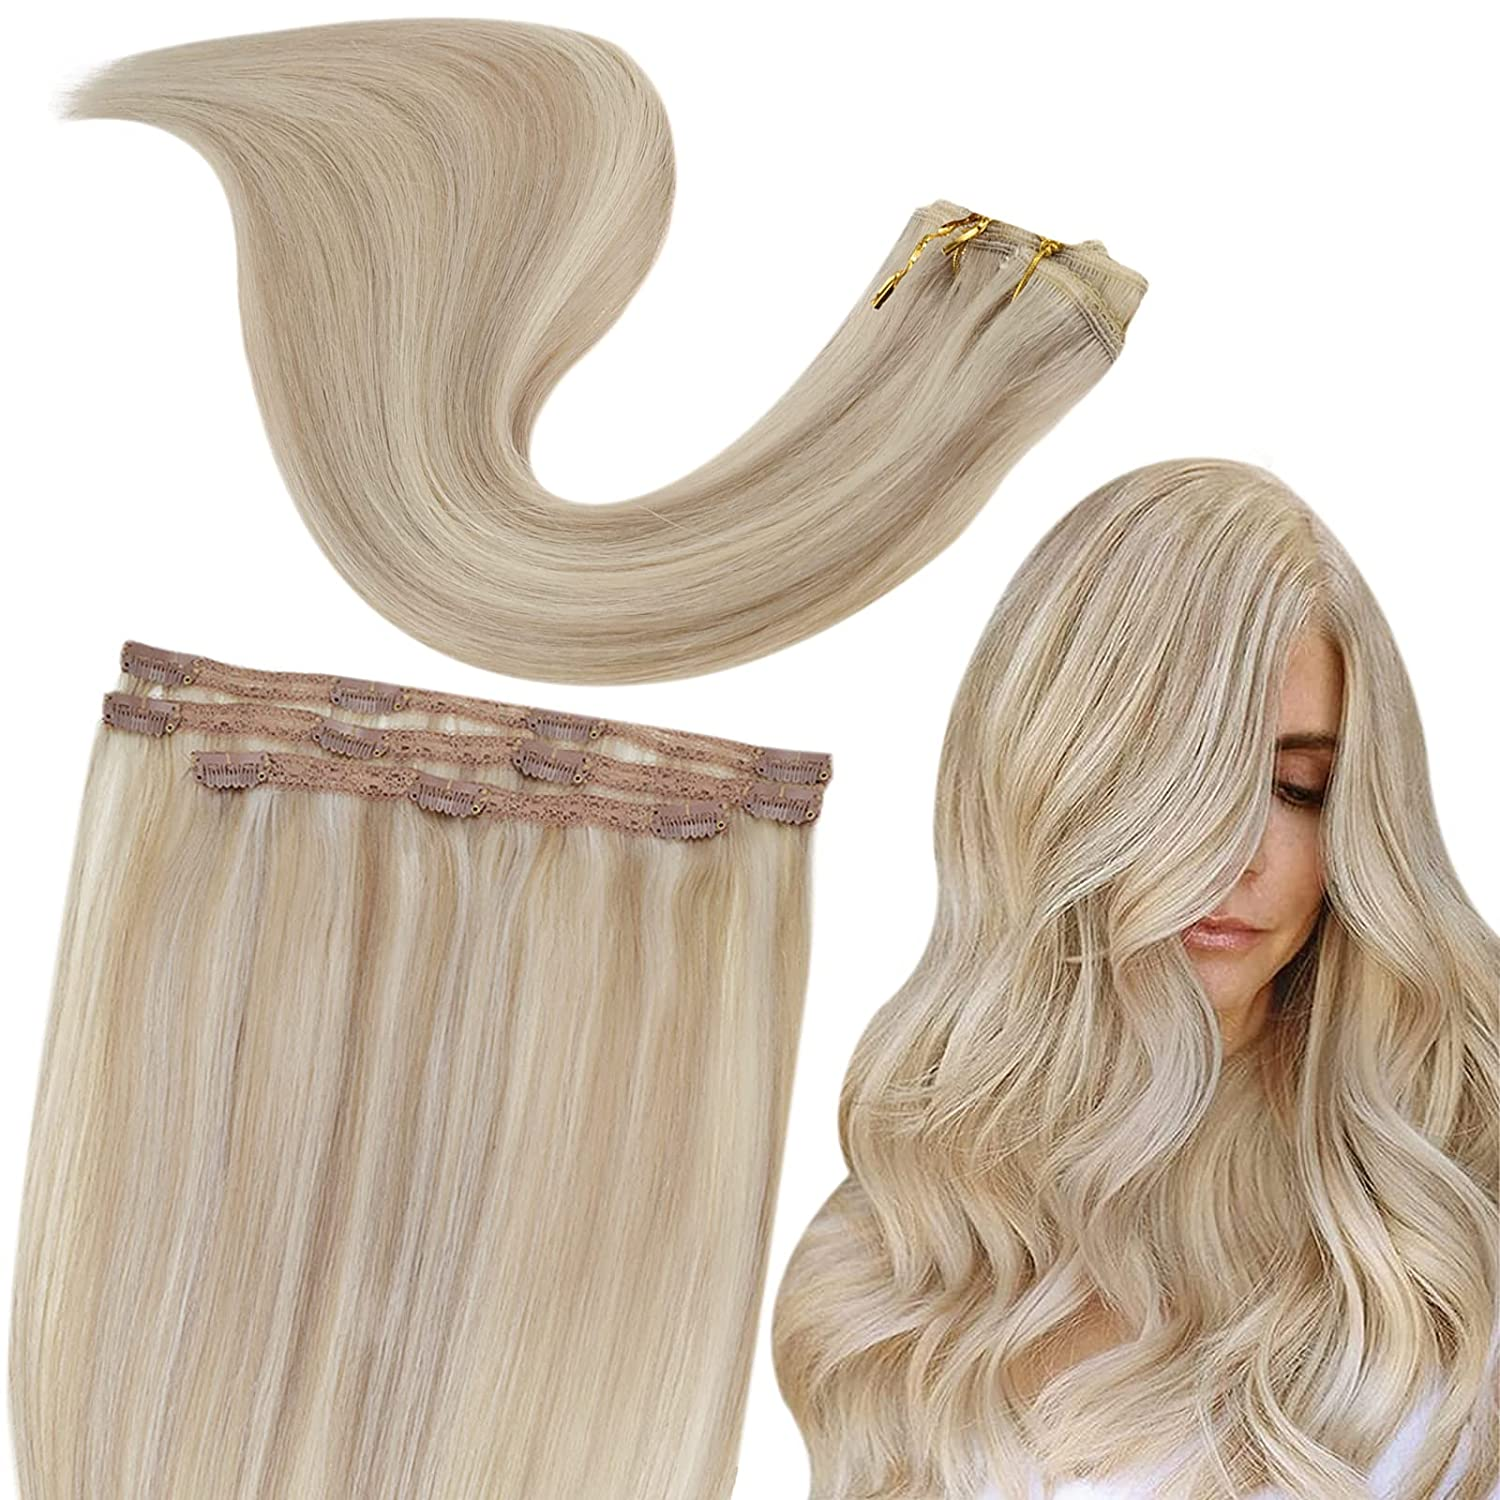 RUNATURE Blonde Max 73% OFF Popular standard Hair Extensions Clip D in Color Human 18P60